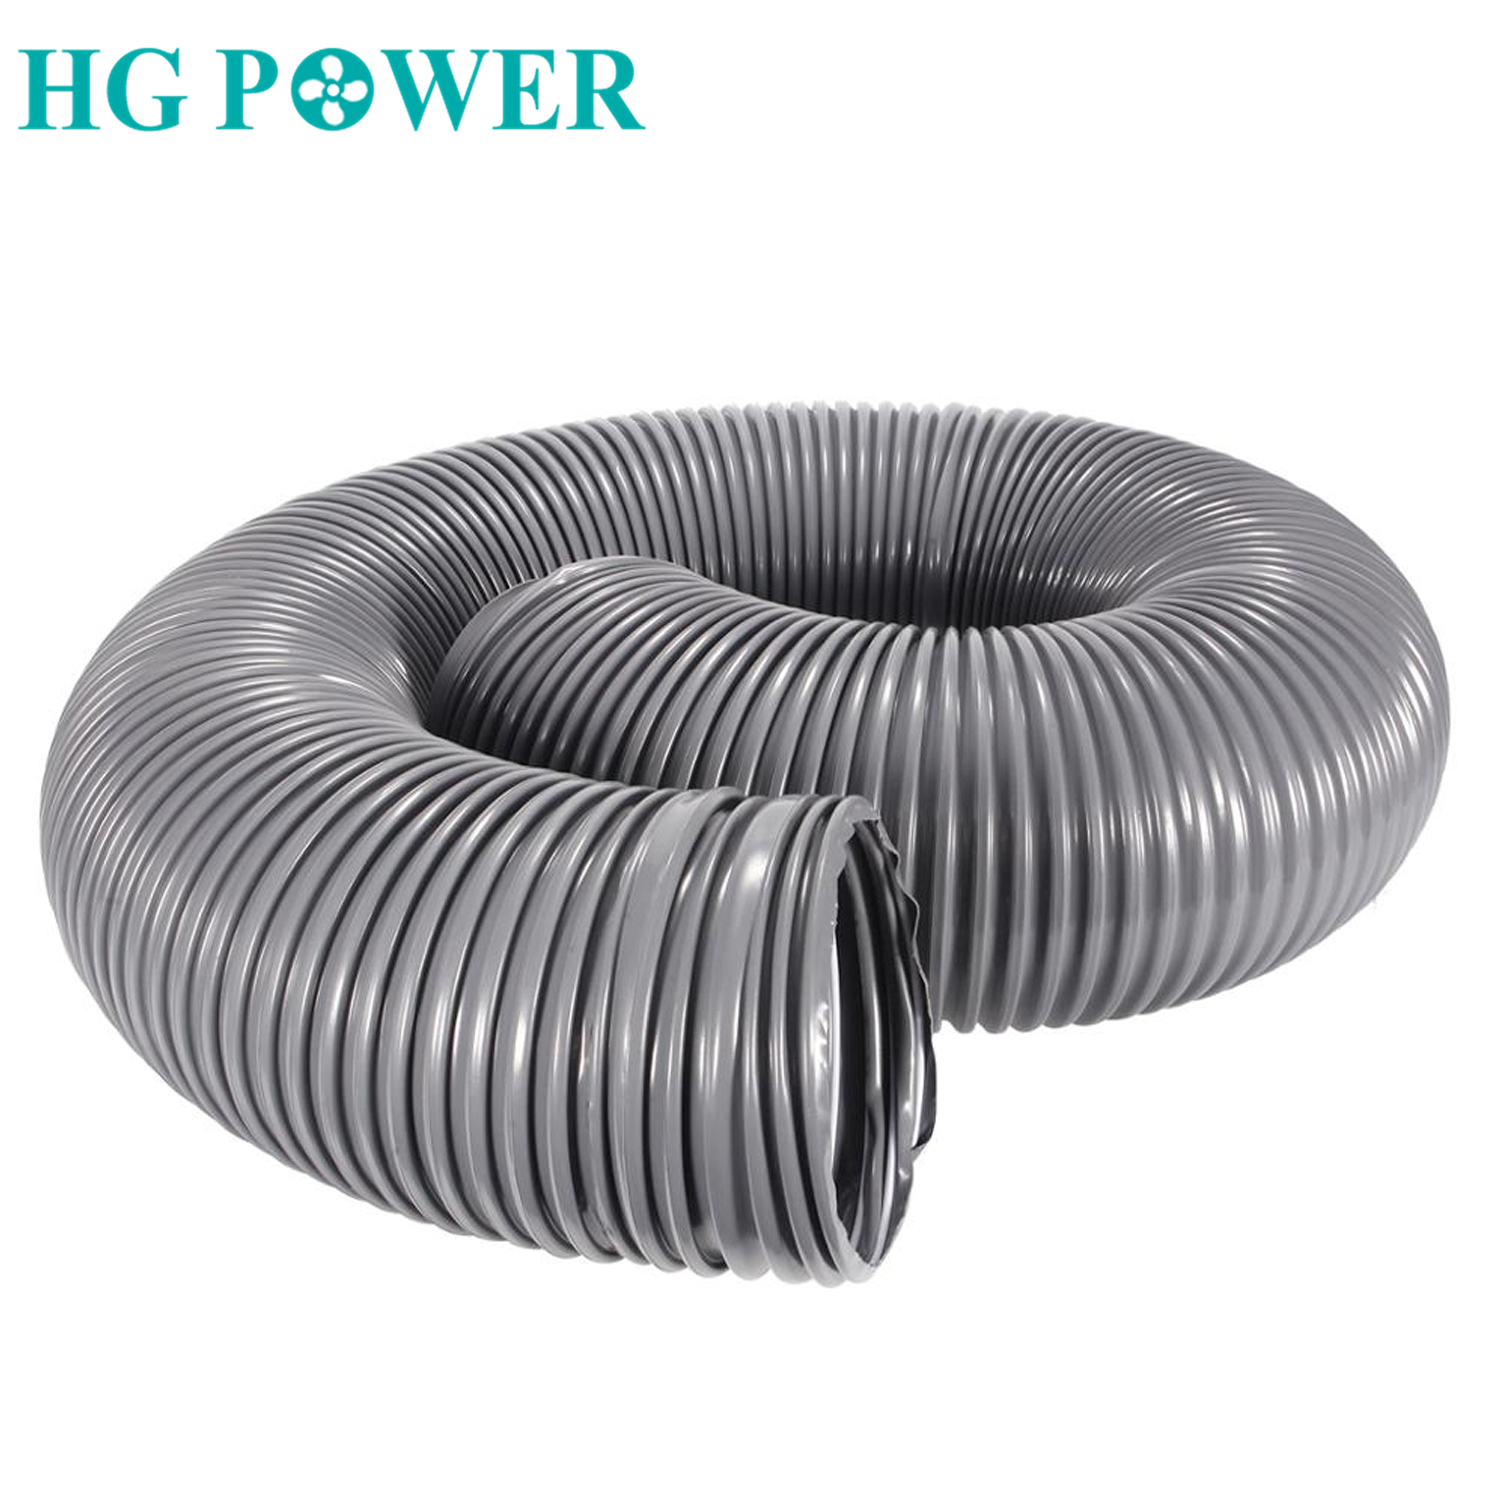 2M PVC Flexible Hose Pipe Steel Wire Hose Ventilation Ducting Telescopic Ventilation Pipe Dust Ventilator Hose Exhaust Pipe Gray